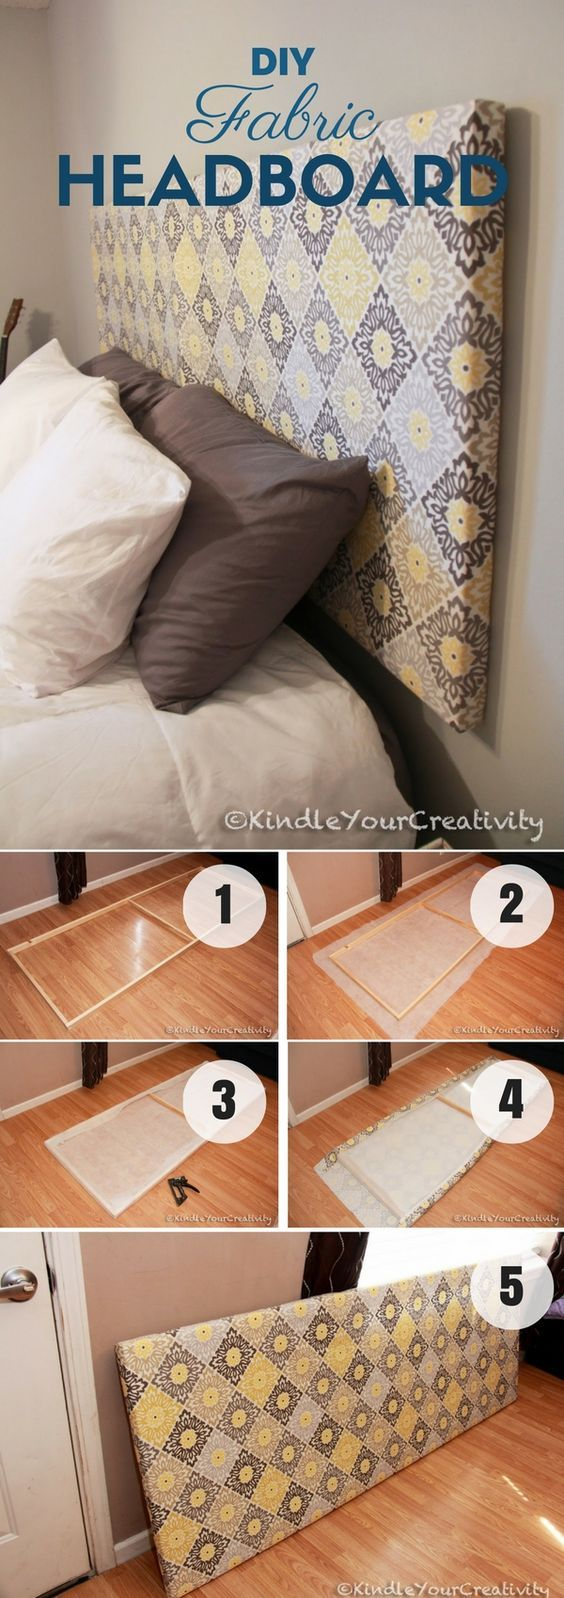 best head boards diy images on pinterest headboard ideas